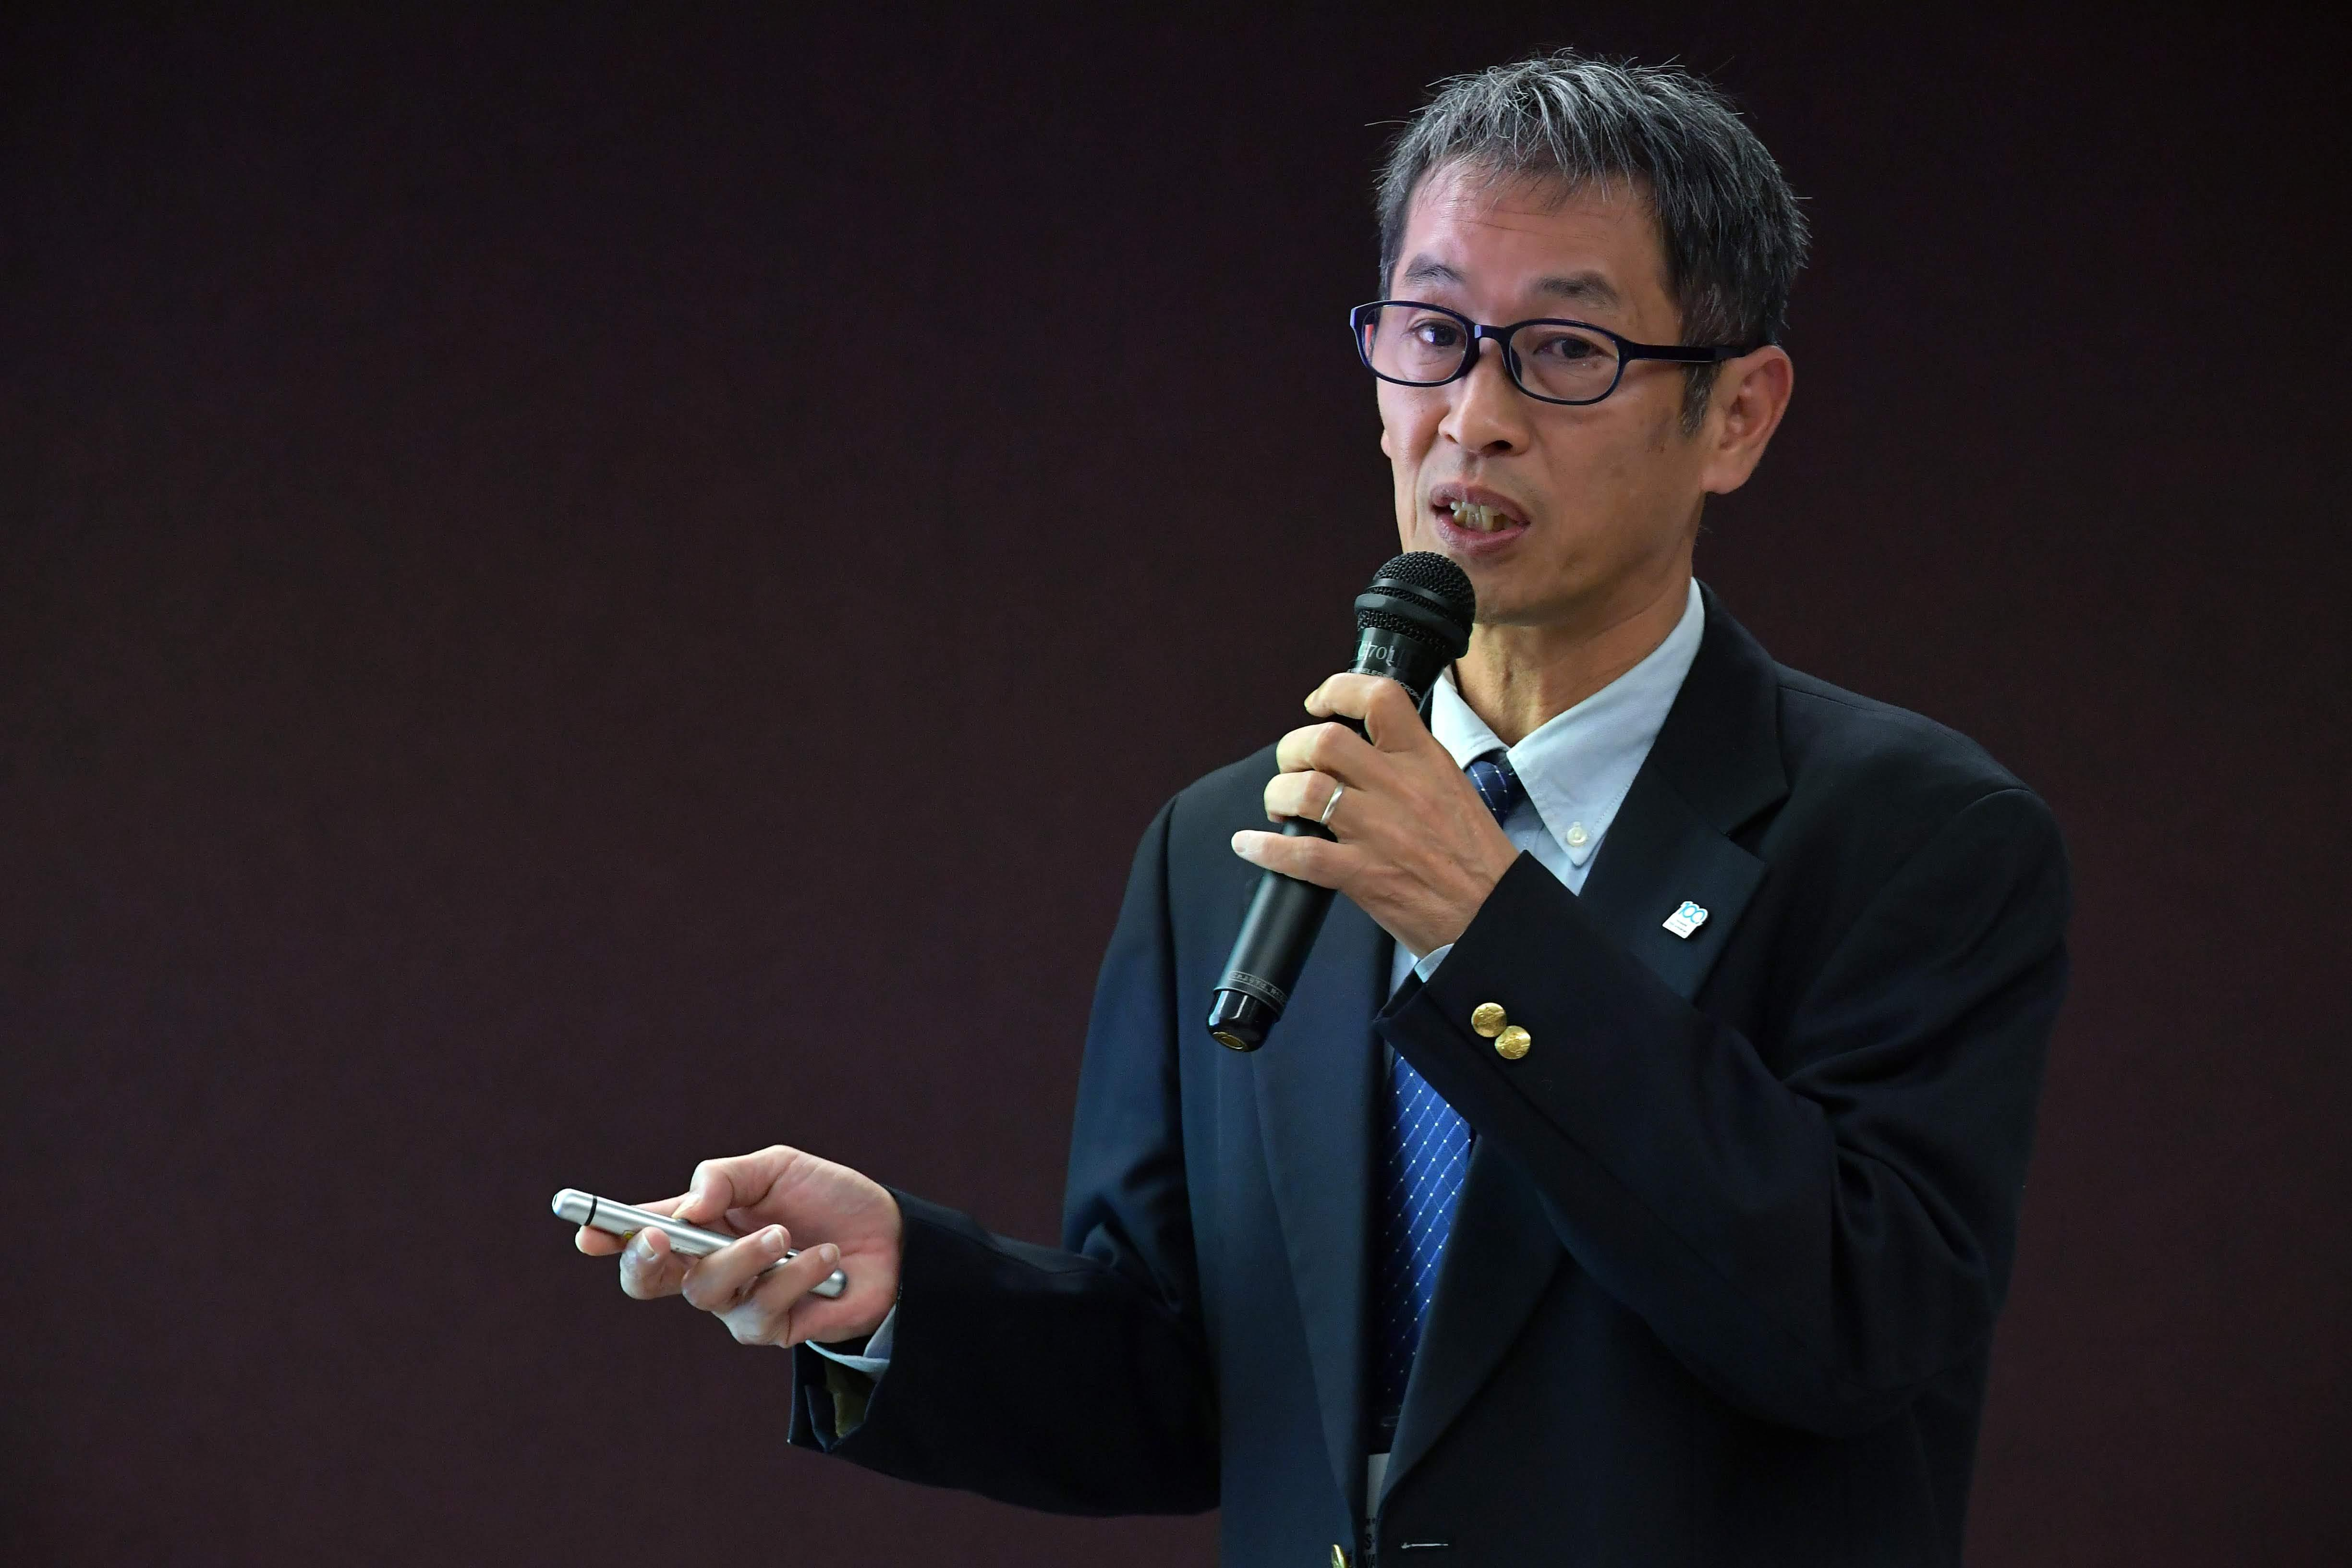 Seminar: Coating Technologies to Keep Clean Surface / キレイが長持ちするコーティング技術